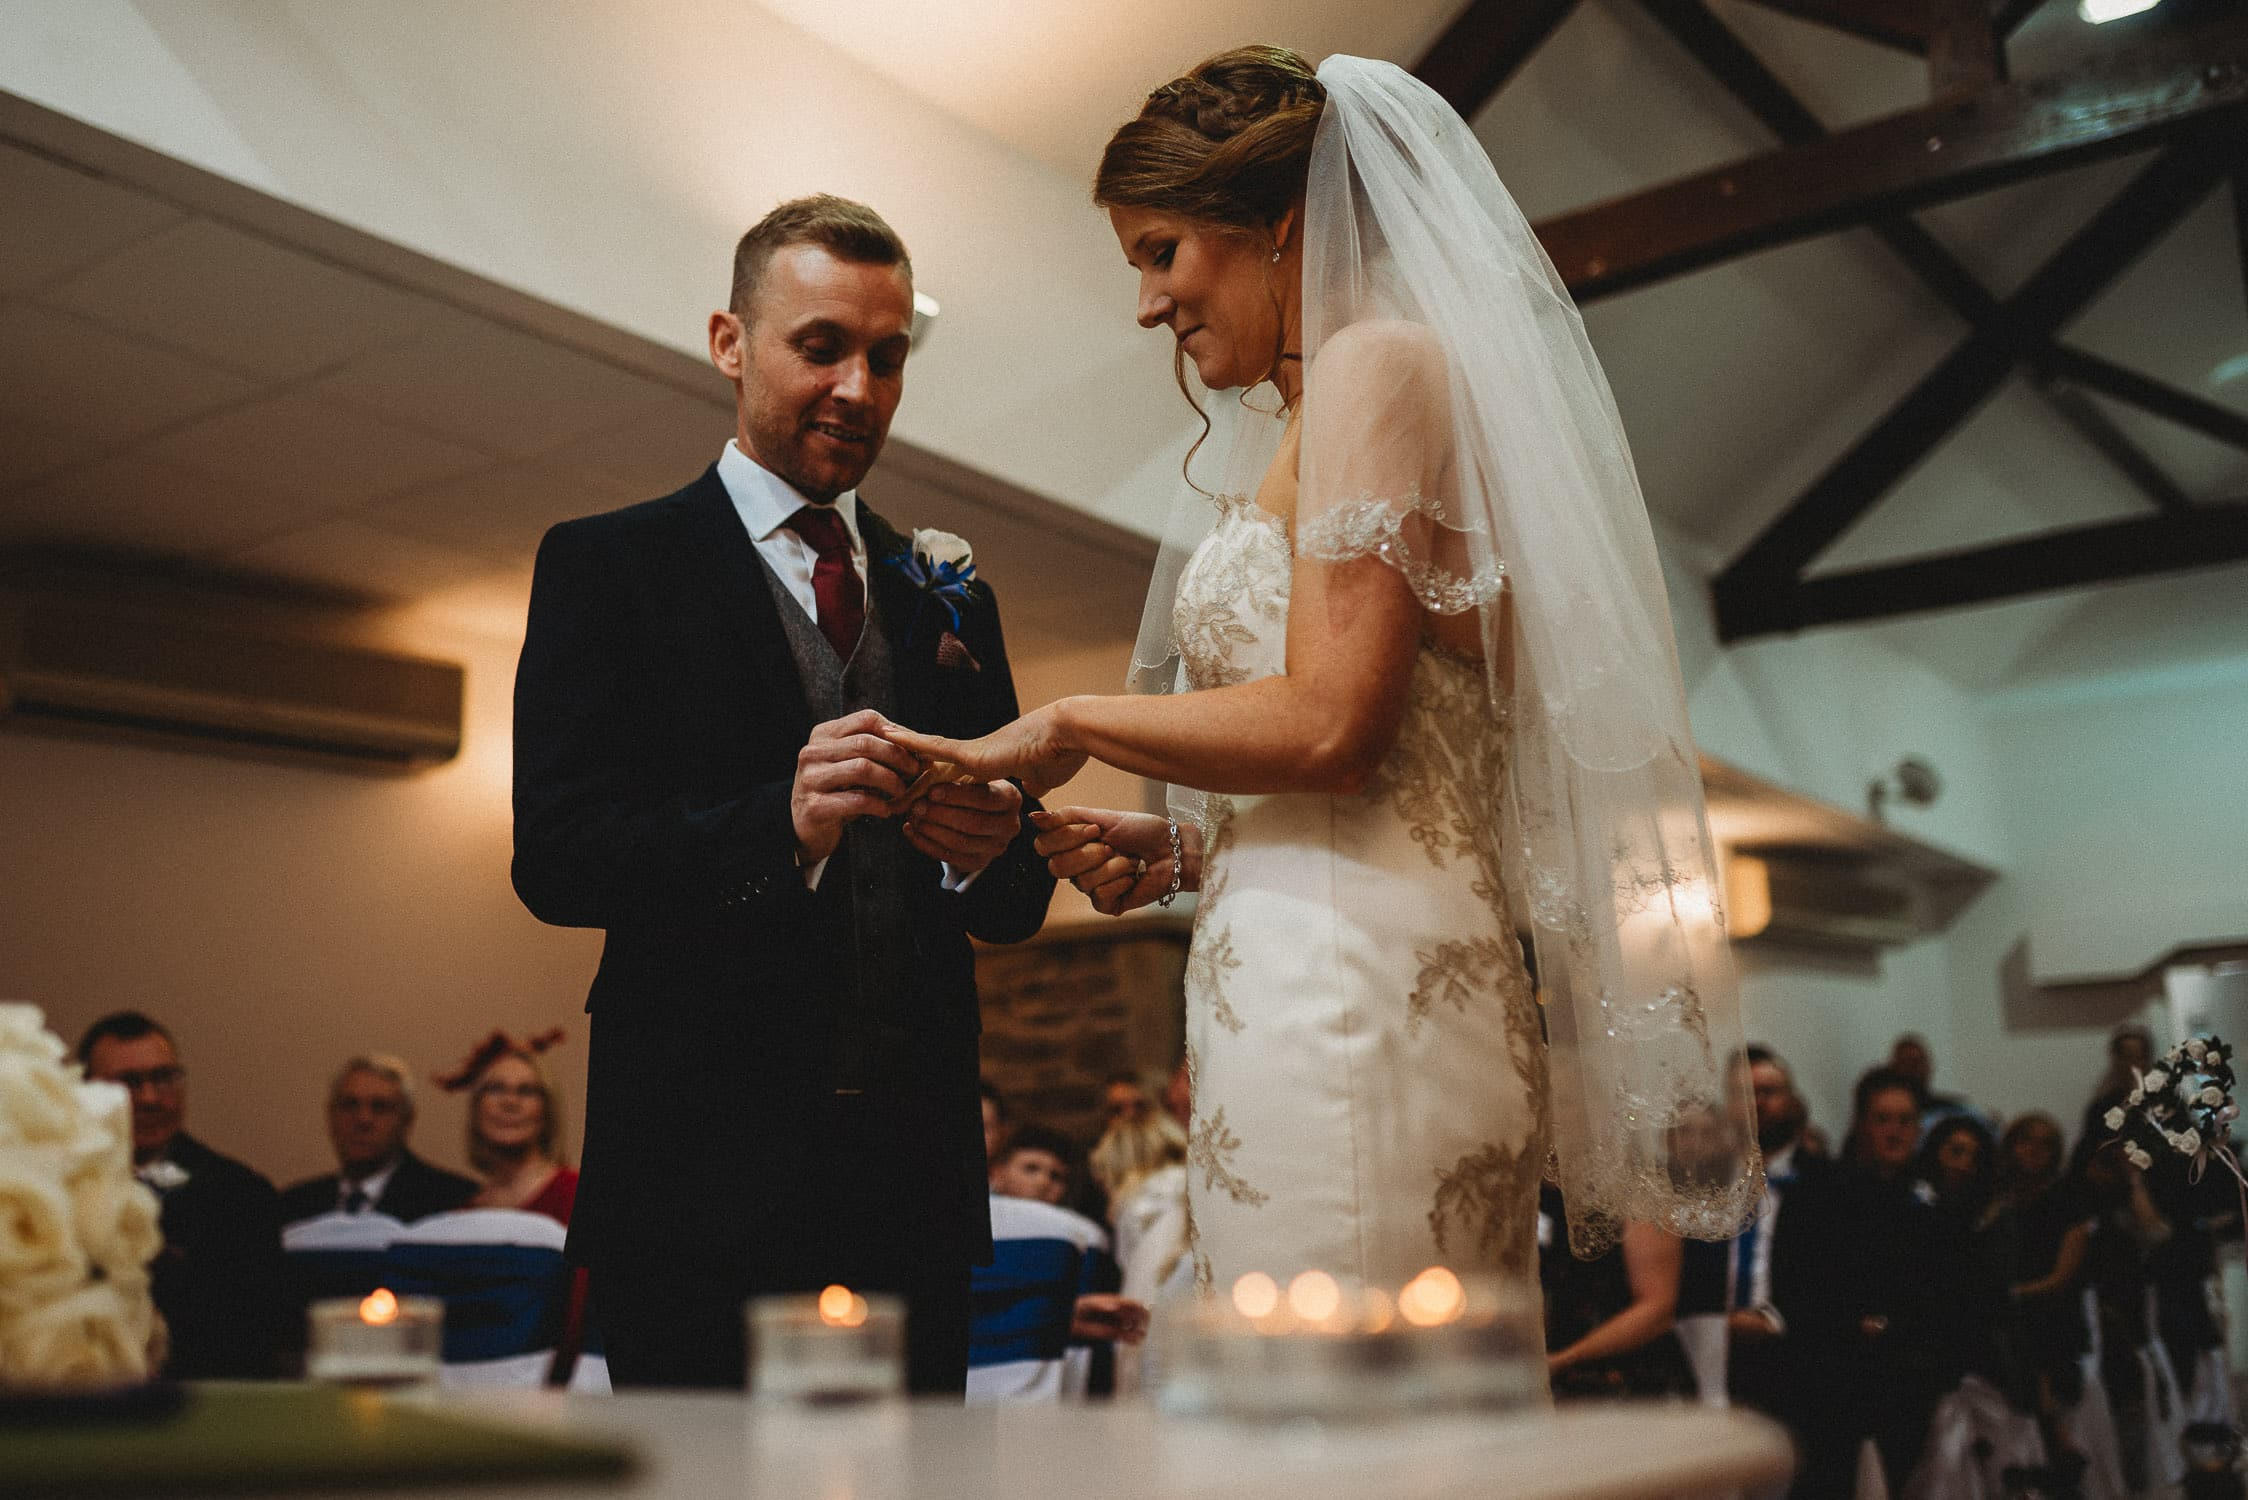 groom putting ring on bride's finger during ceremony at Stirk House in Lancashire